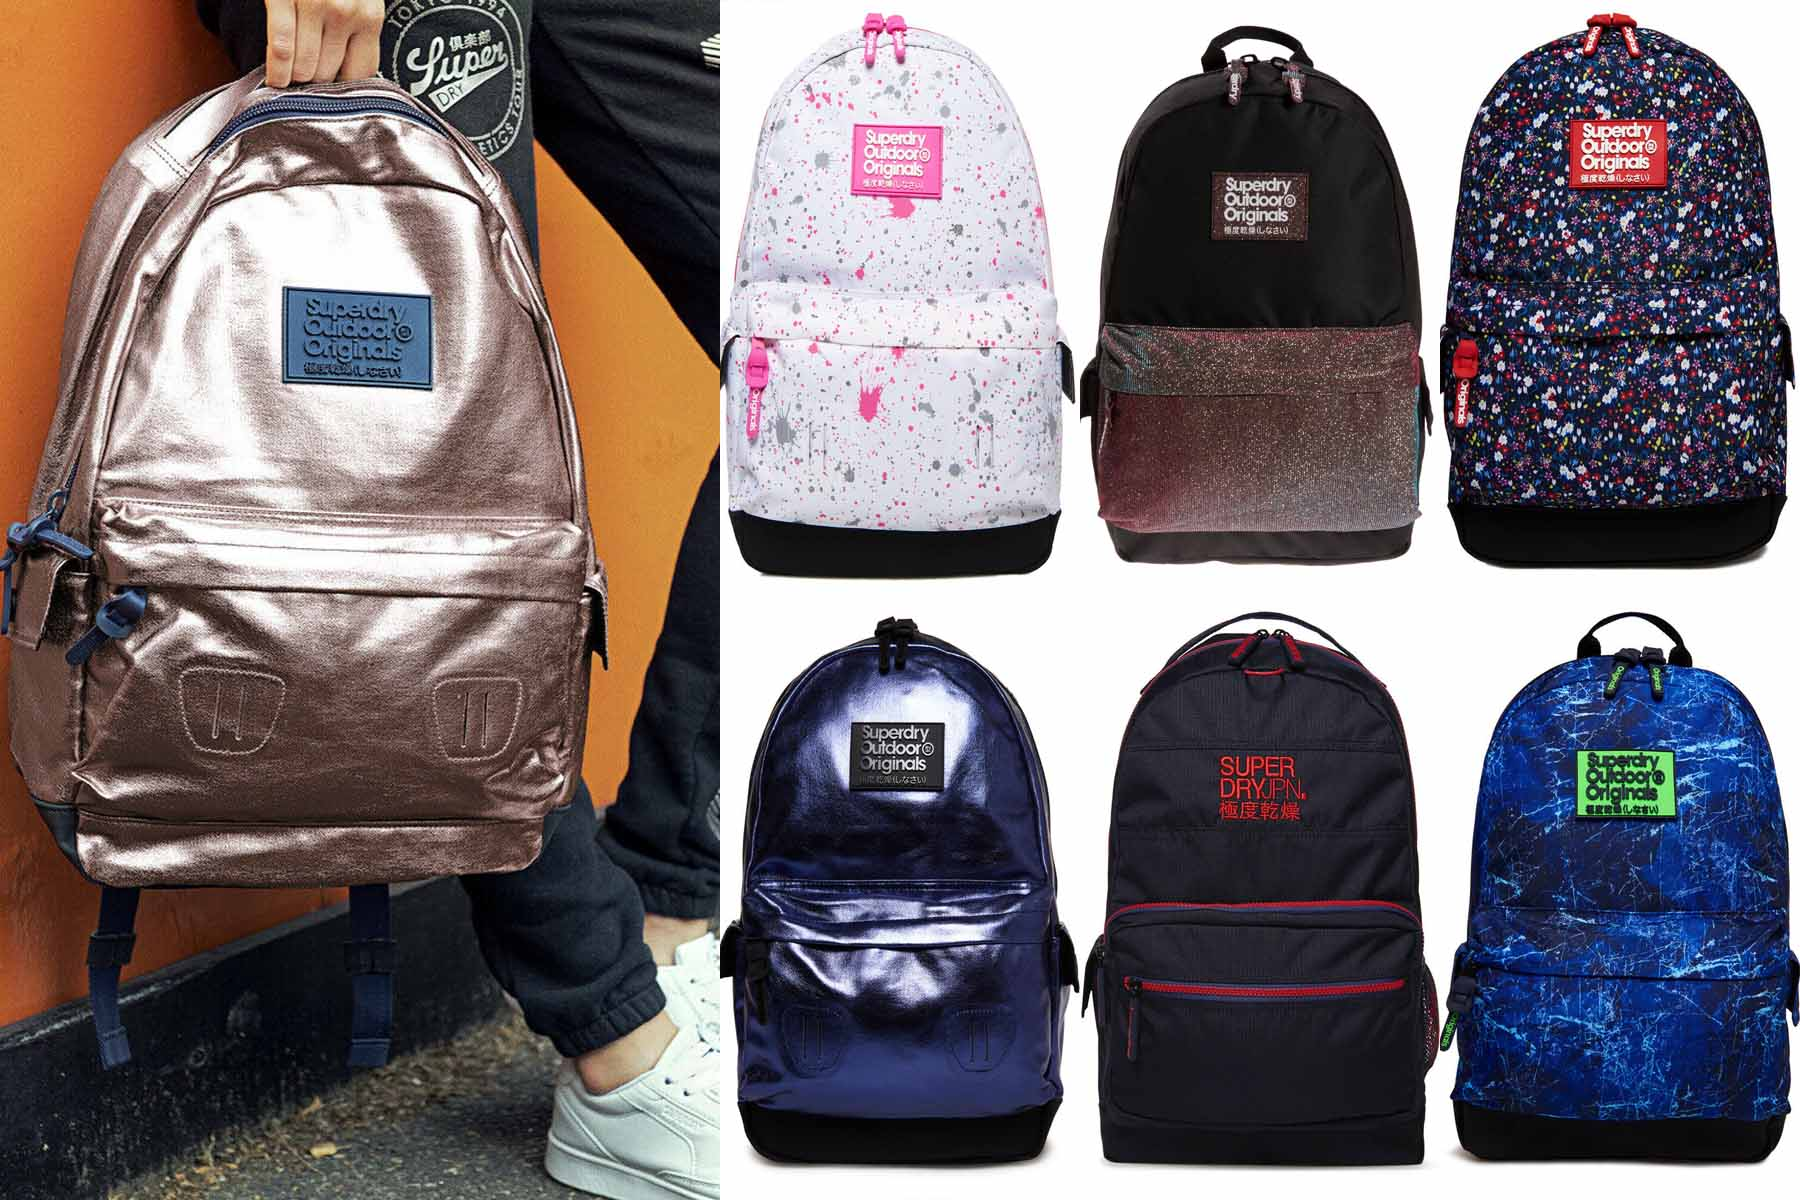 Details about New Superdry Bags Selection Various Styles & Colours 240119